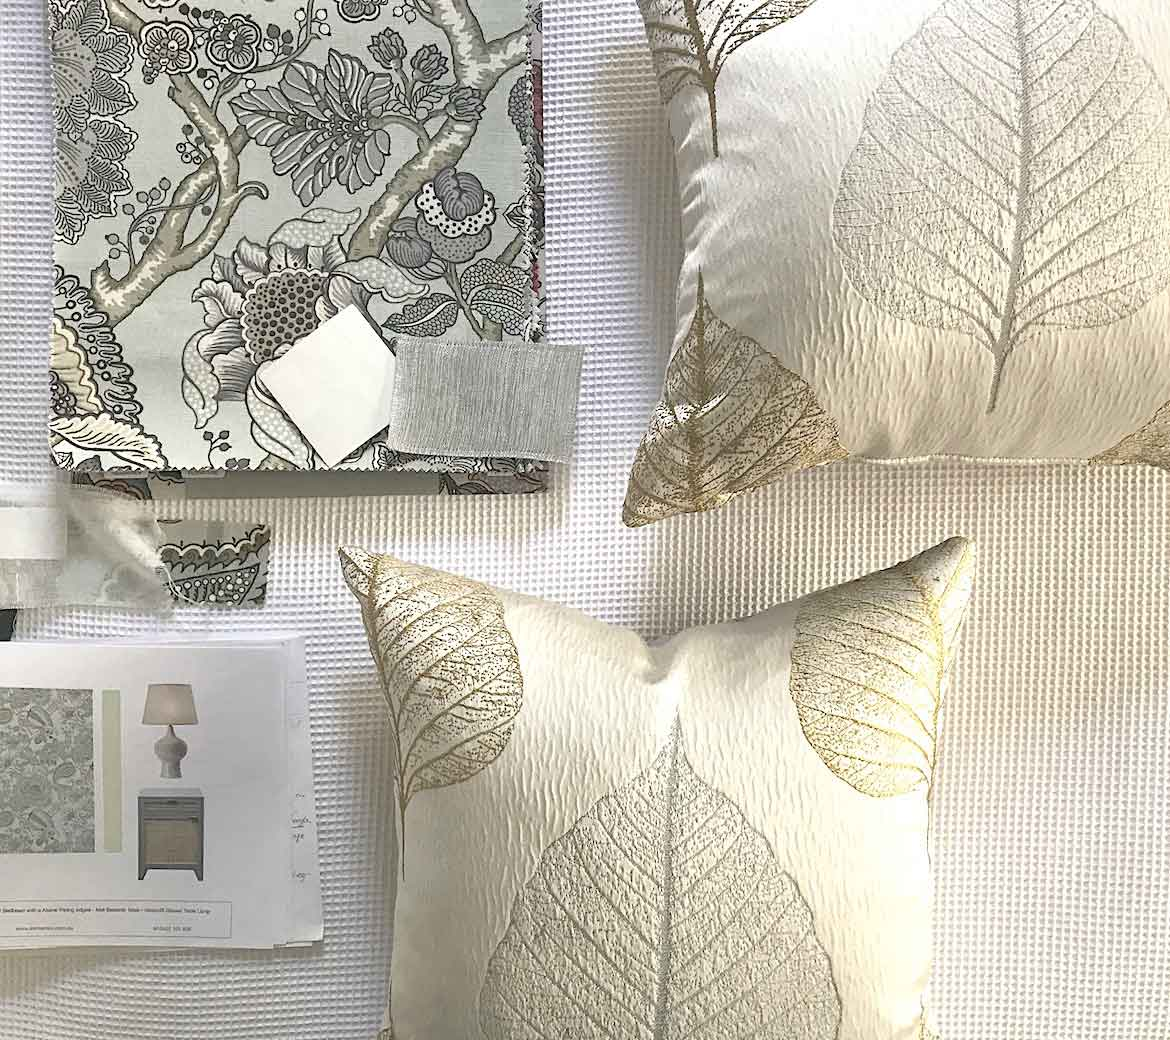 Textile samples and cushions